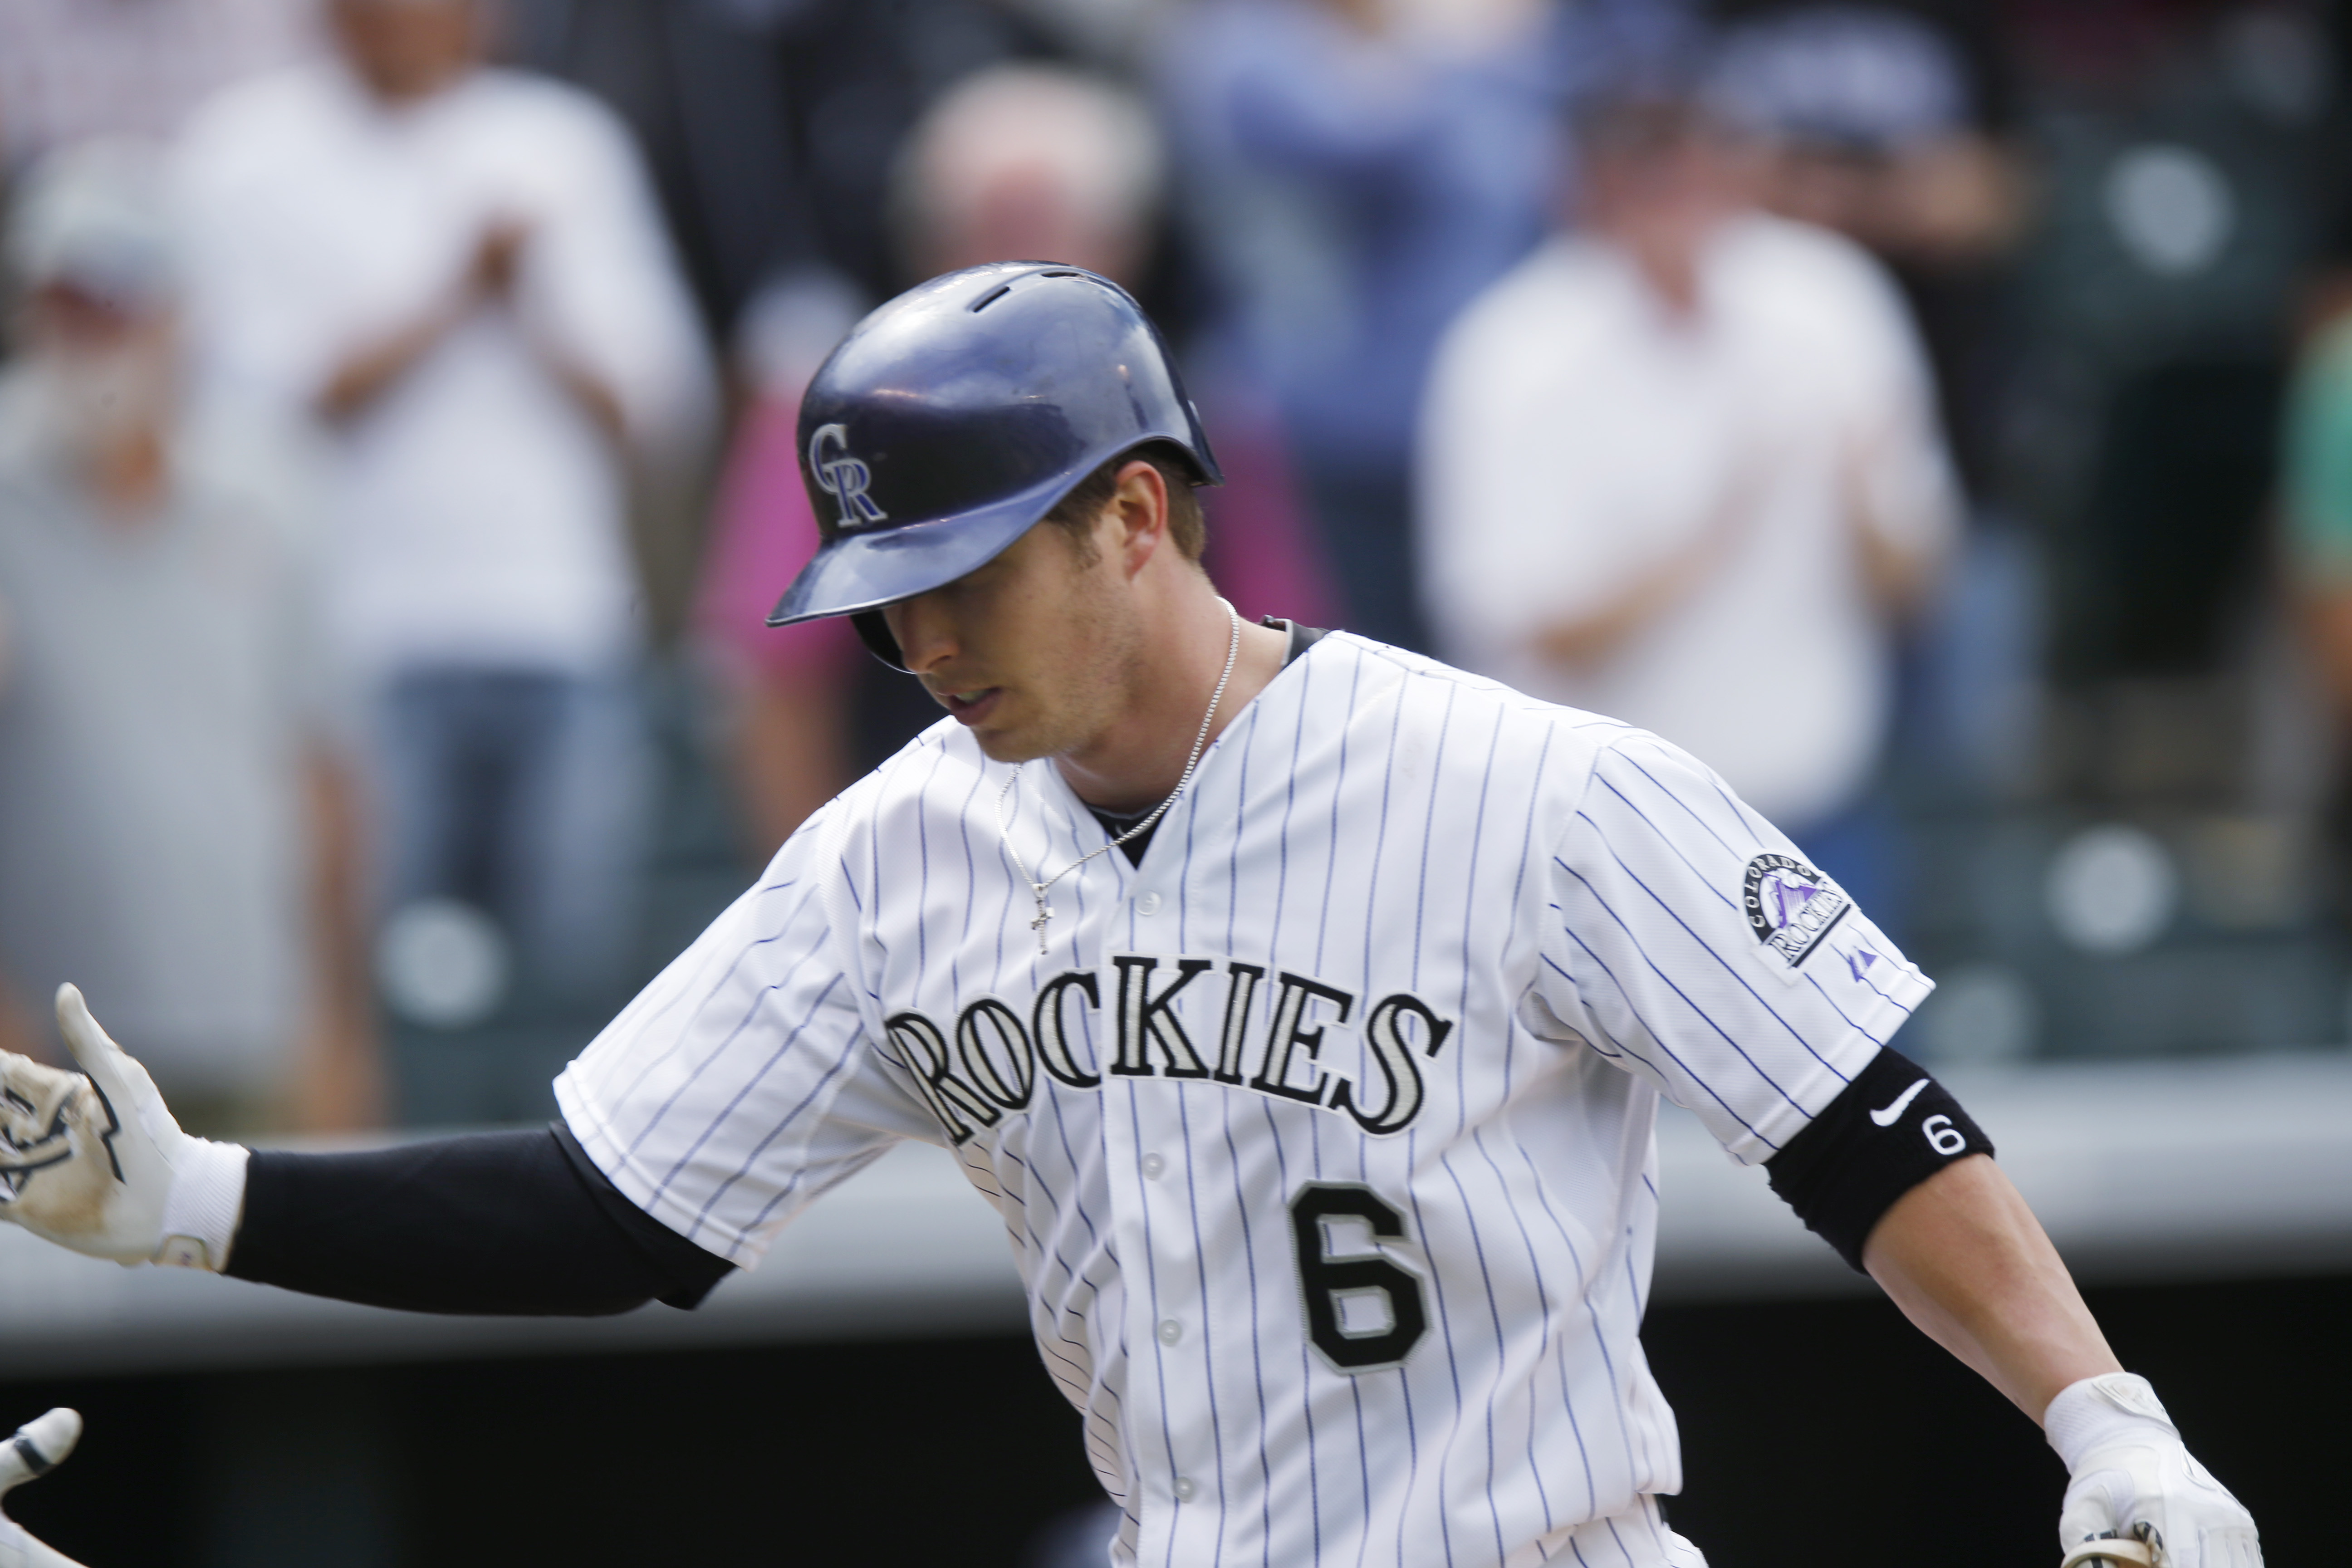 Colorado Rockies' Corey Dickerson is congratulated after hitting a solo home run against the San Diego Padres in the fifth inning of a baseball game Thursday, April 23, 2015, in Denver. (AP Photo/David Zalubowski)